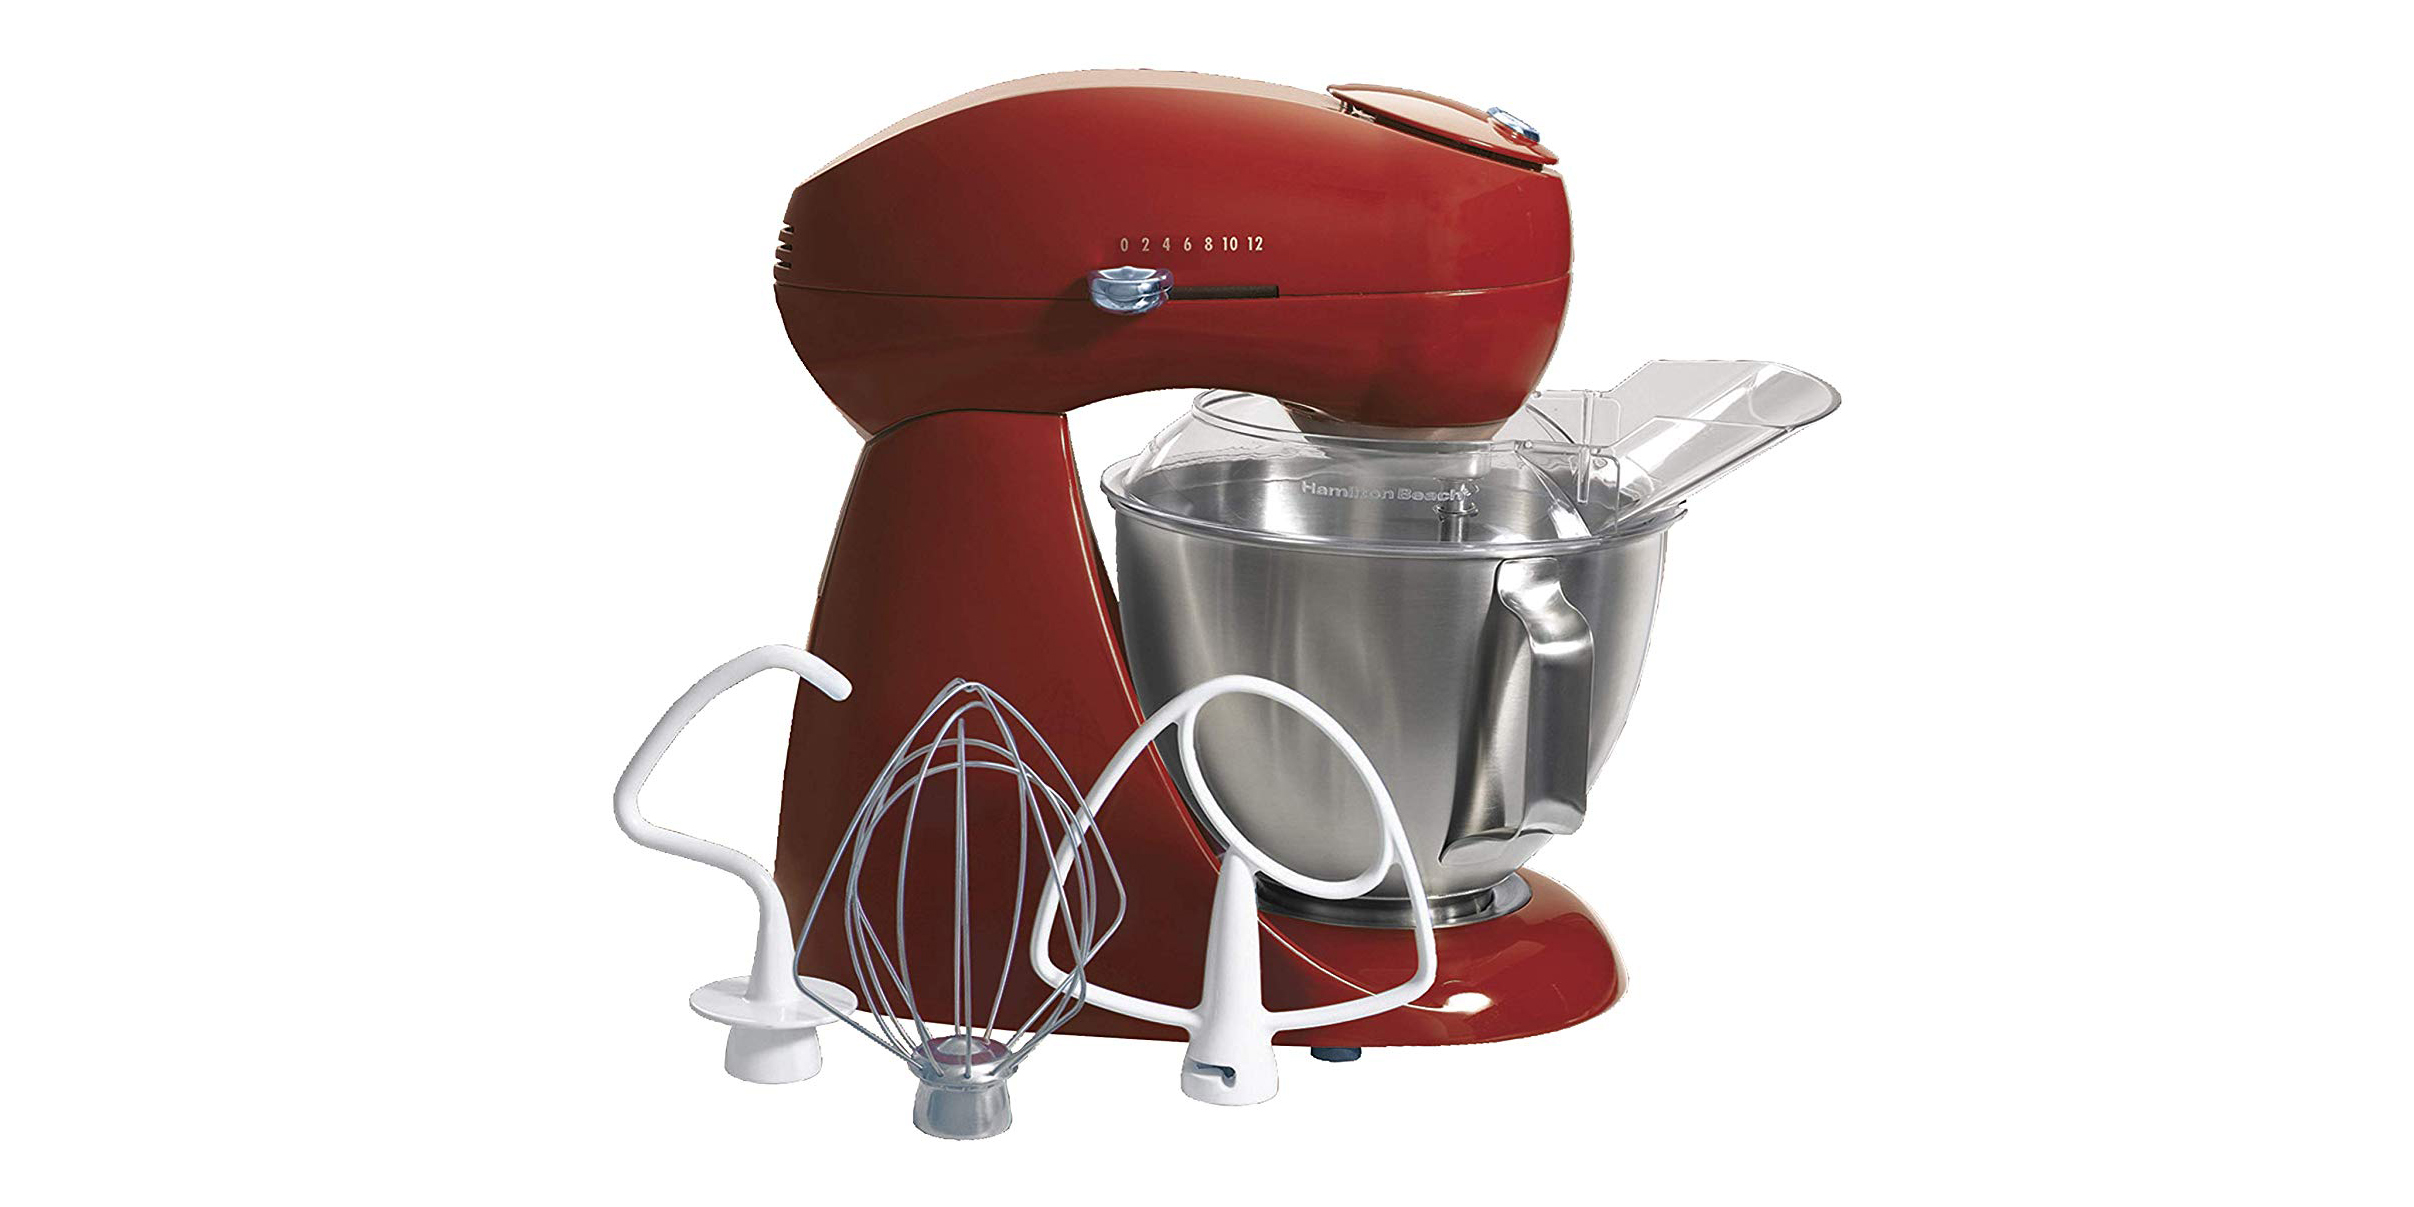 Hamilton Beach All-Metal Stand Mixer hits $140 at Amazon, today only (Reg. $200)